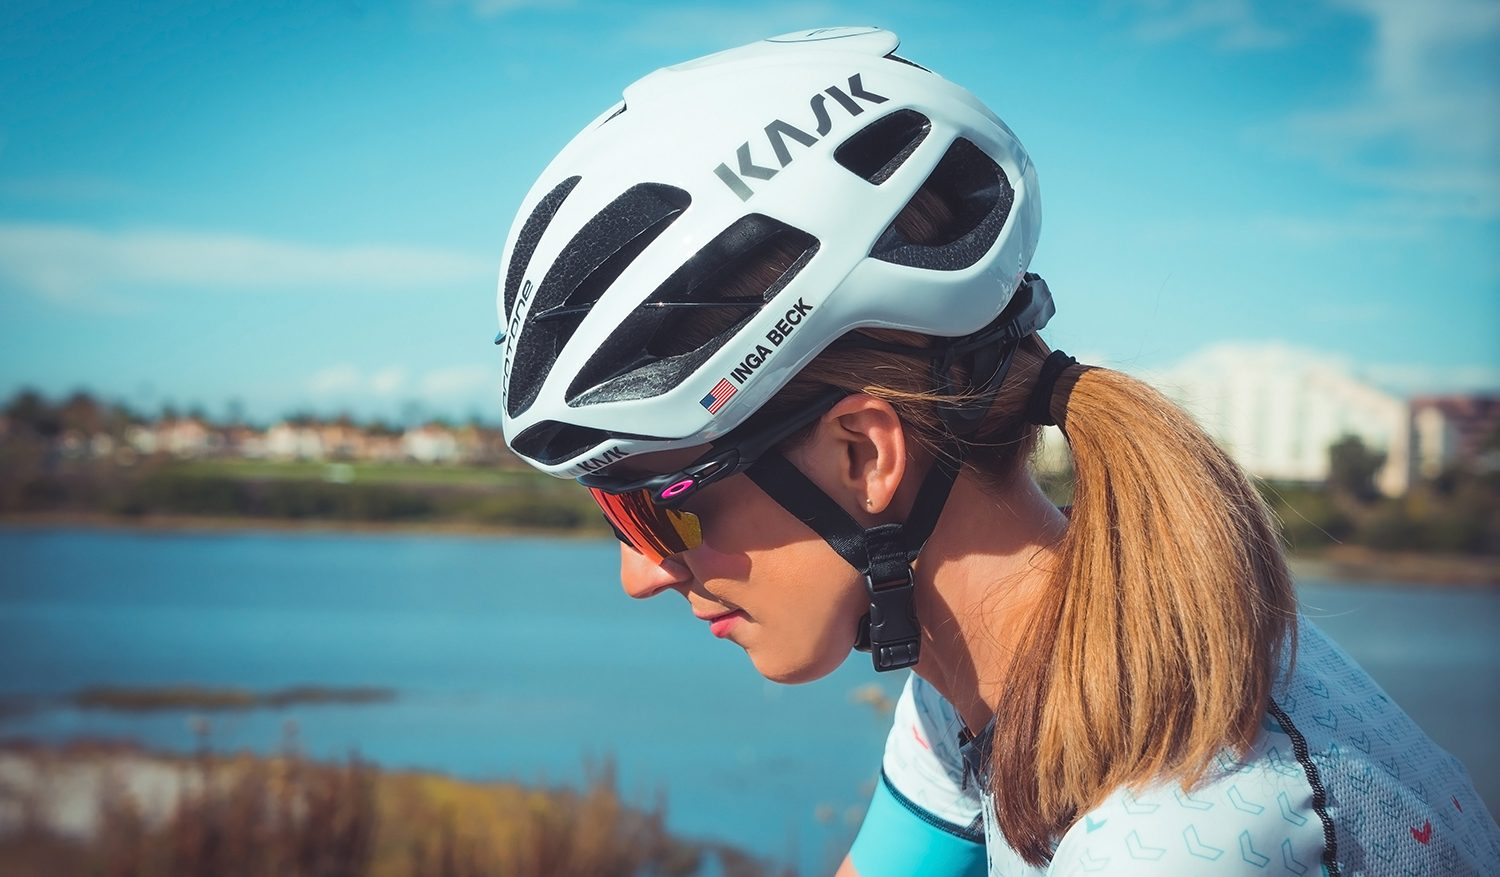 Sporting the Kask Protone with name decals